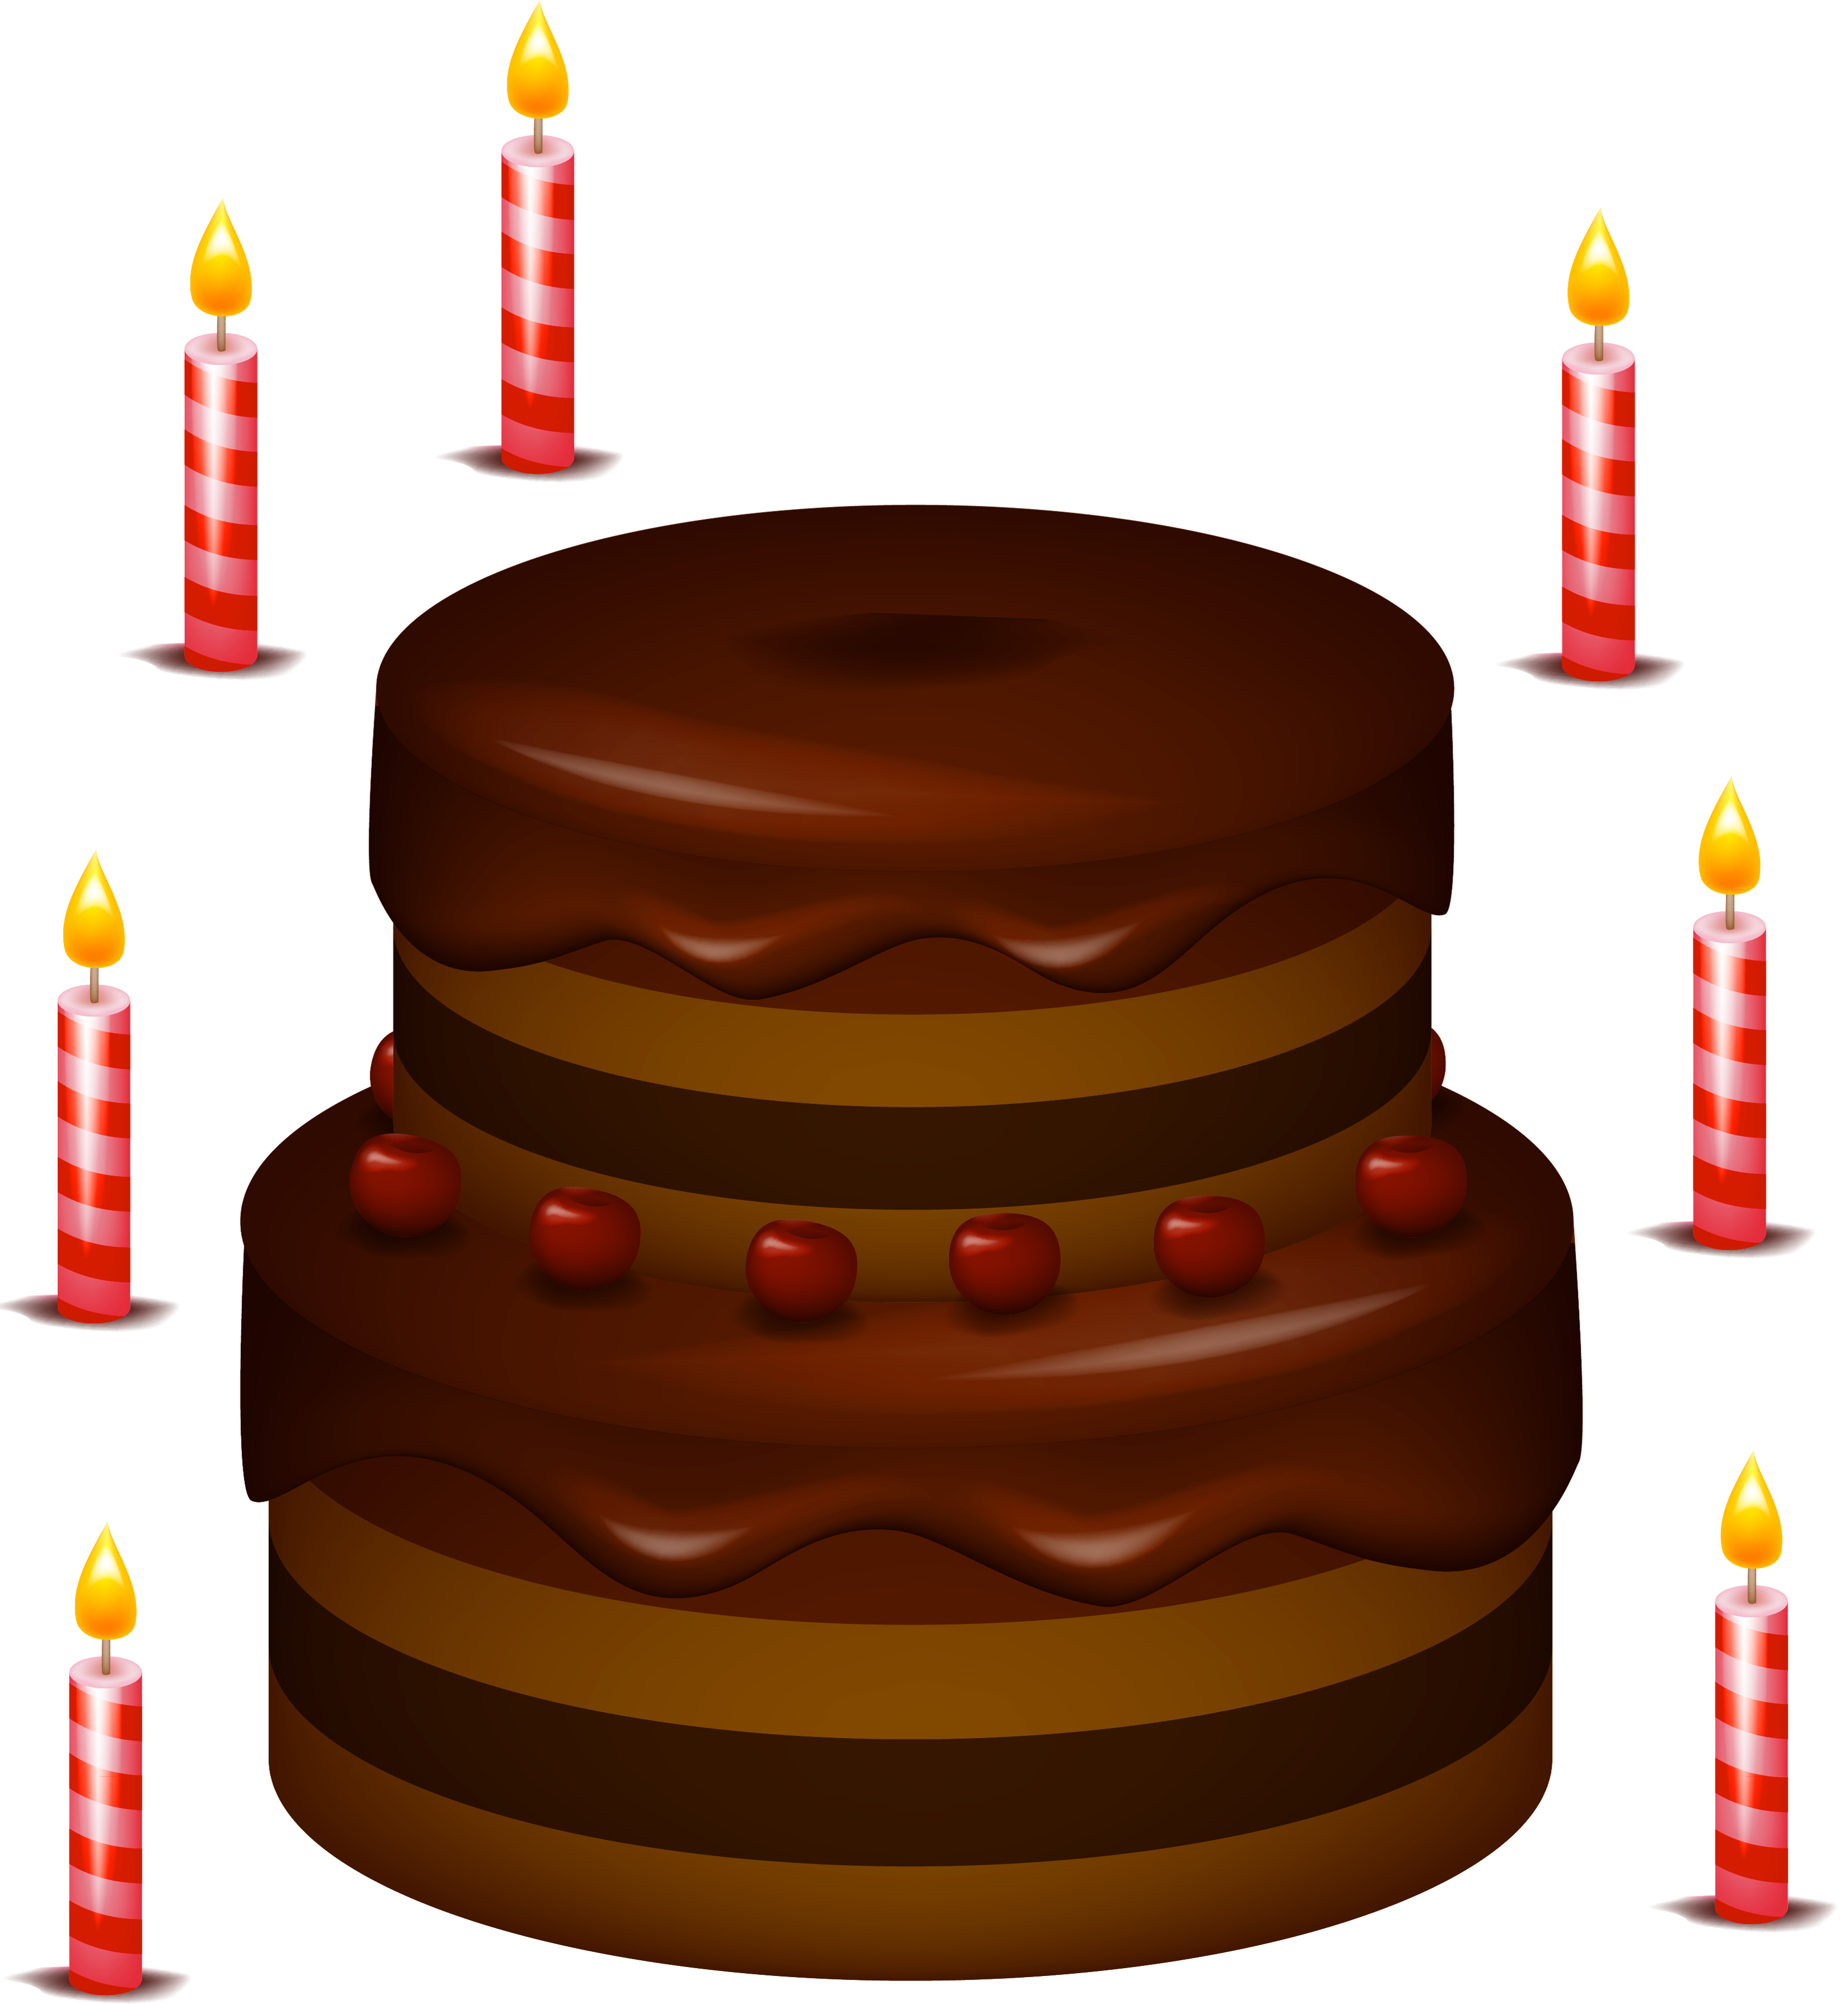 Chocolate clipart brown chocolate. Cake with candles png